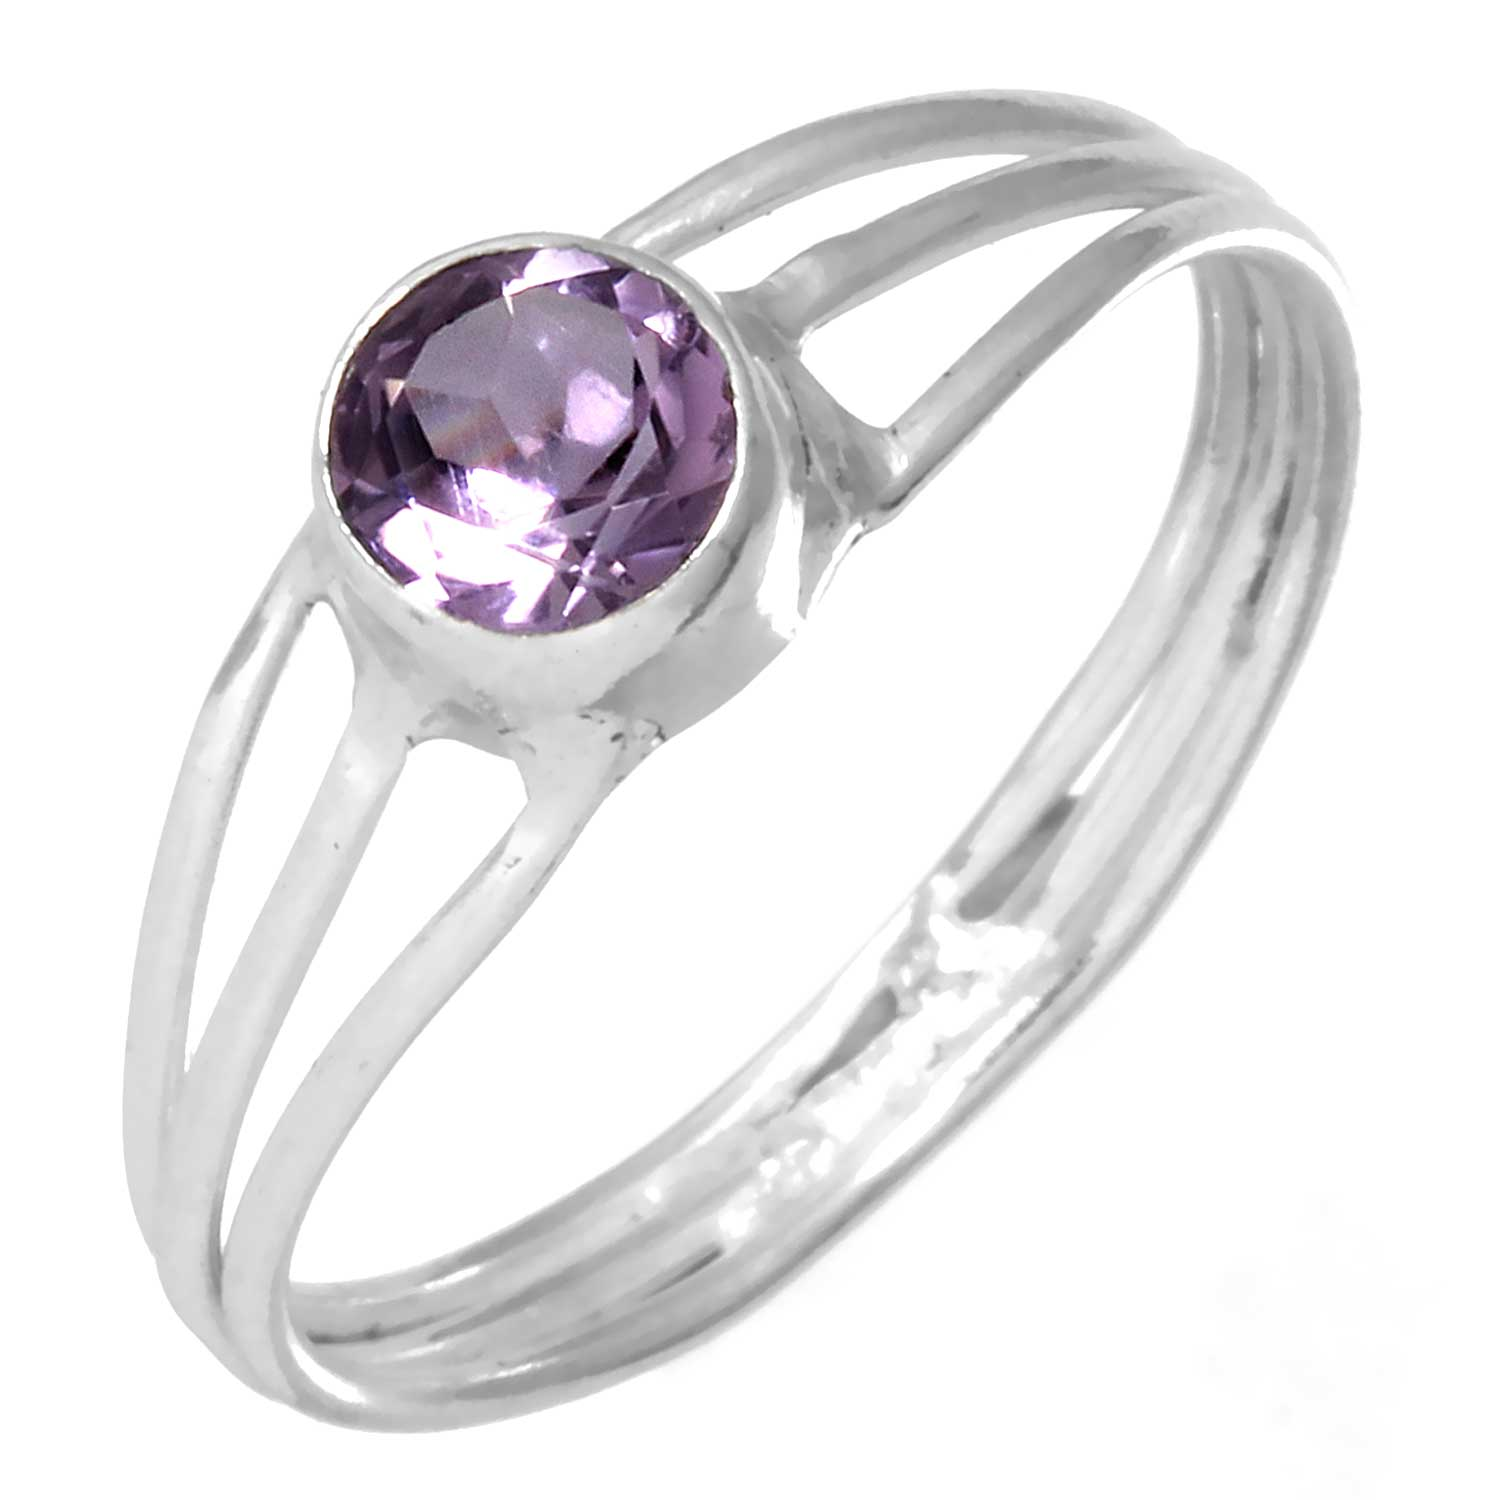 Sterling silver Amethyst (1.5ctw) Ring